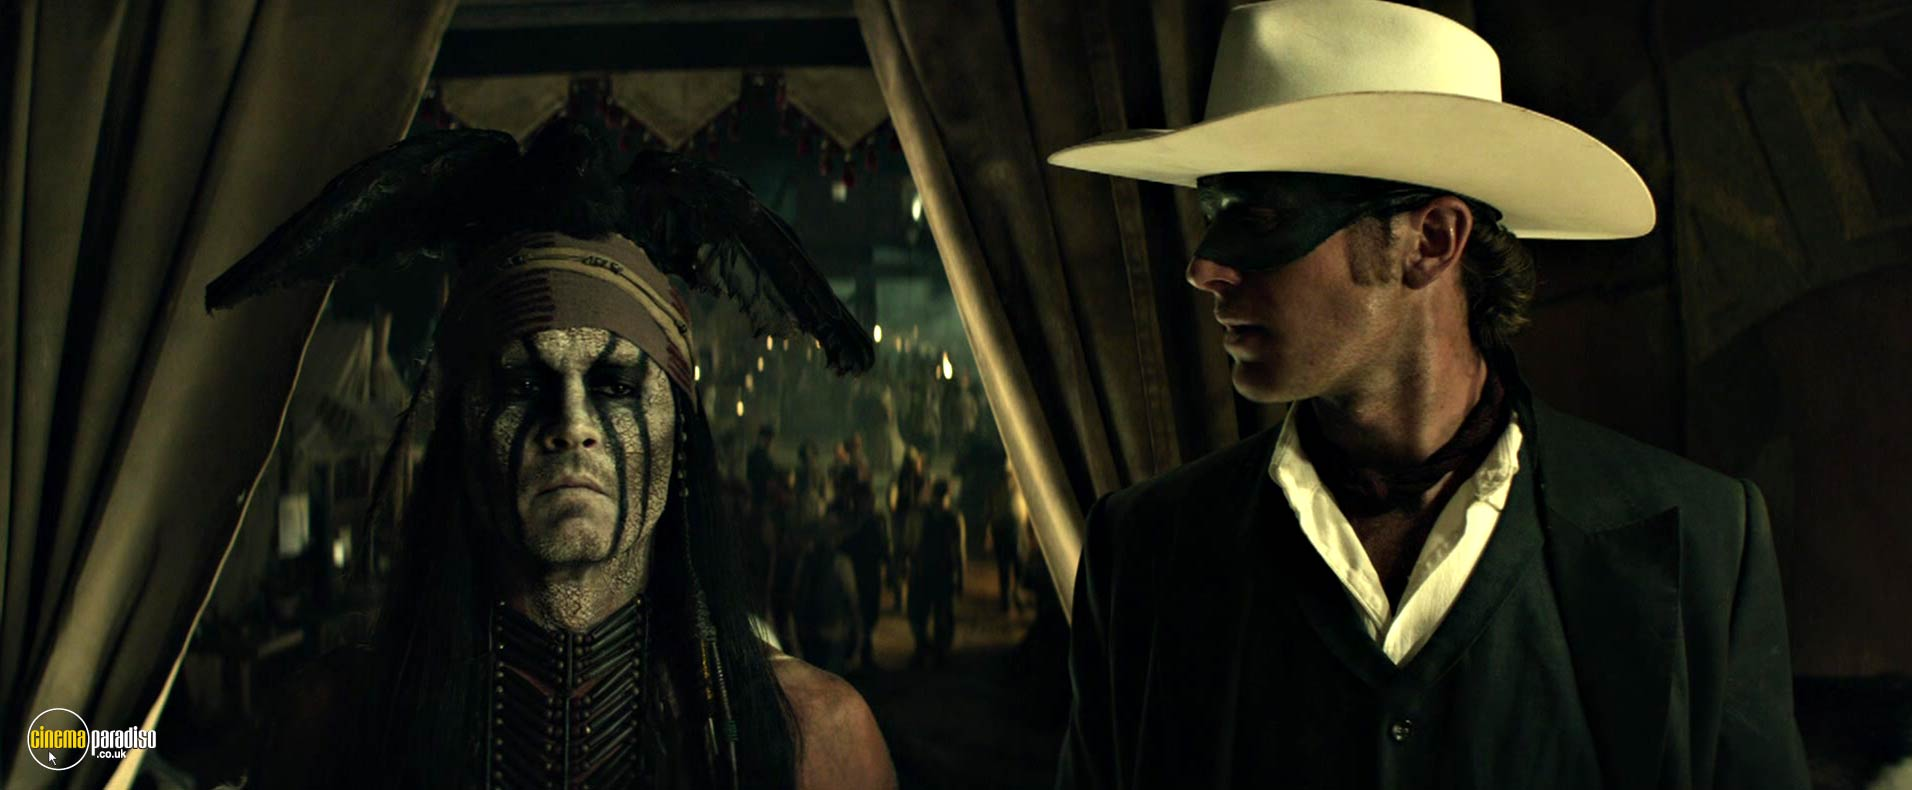 the lone ranger 2013 brrip xvidhd 720p-npw subtitles